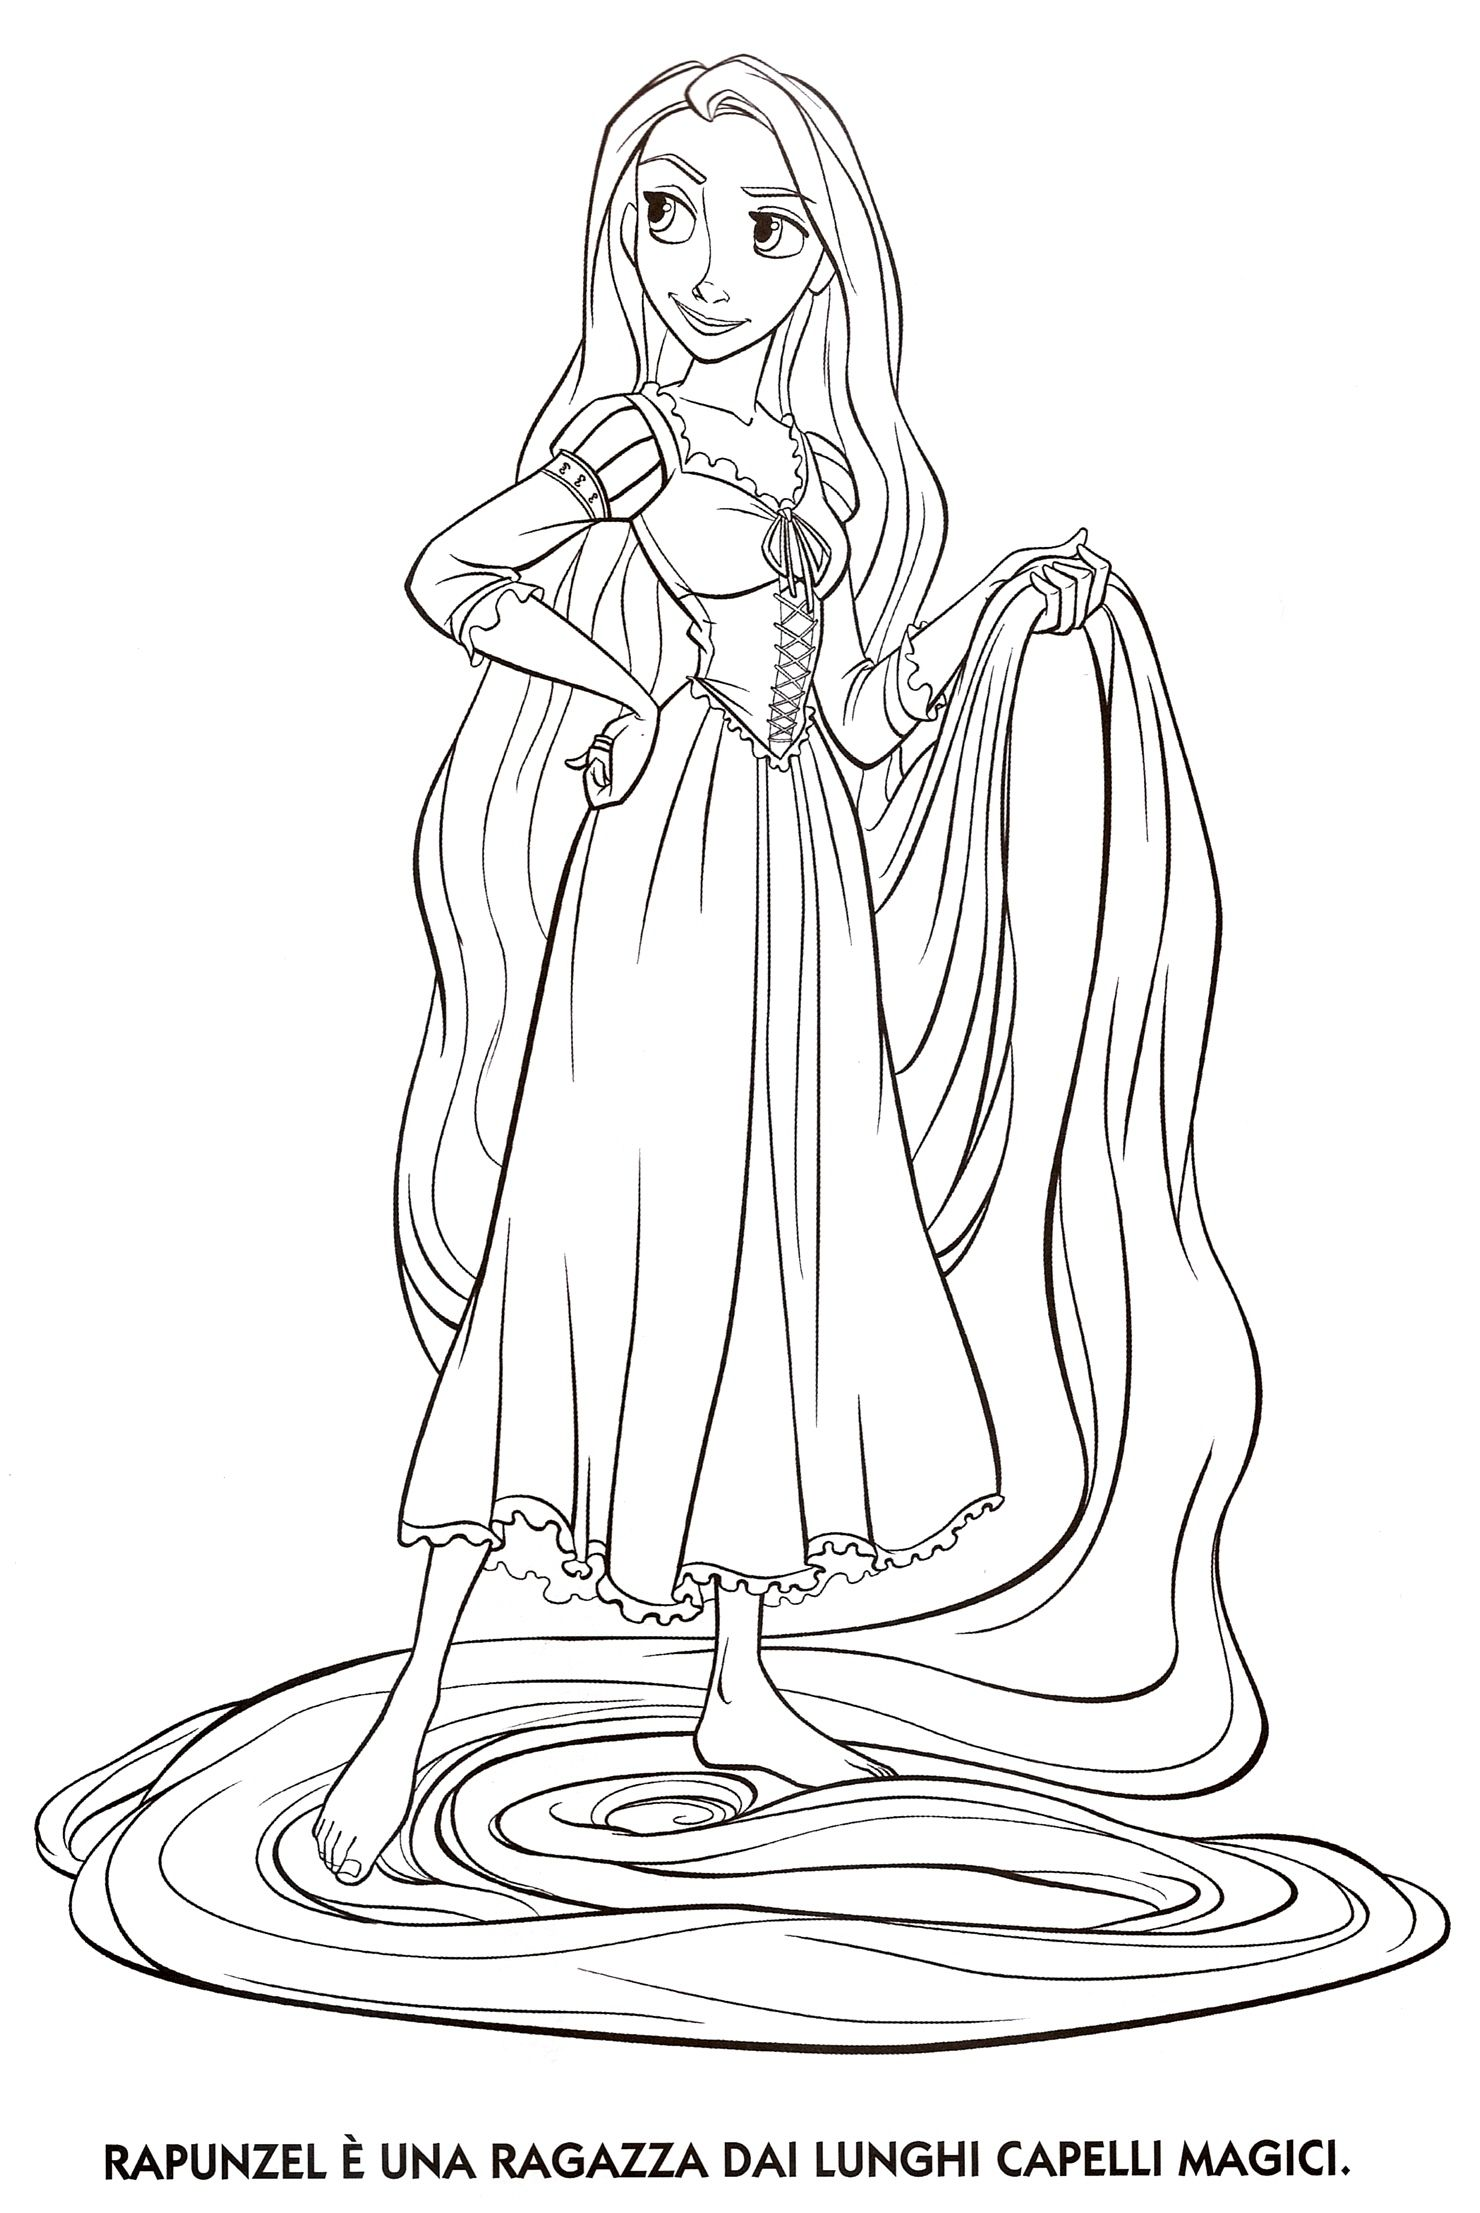 Rapunzel Coloring Page easy for